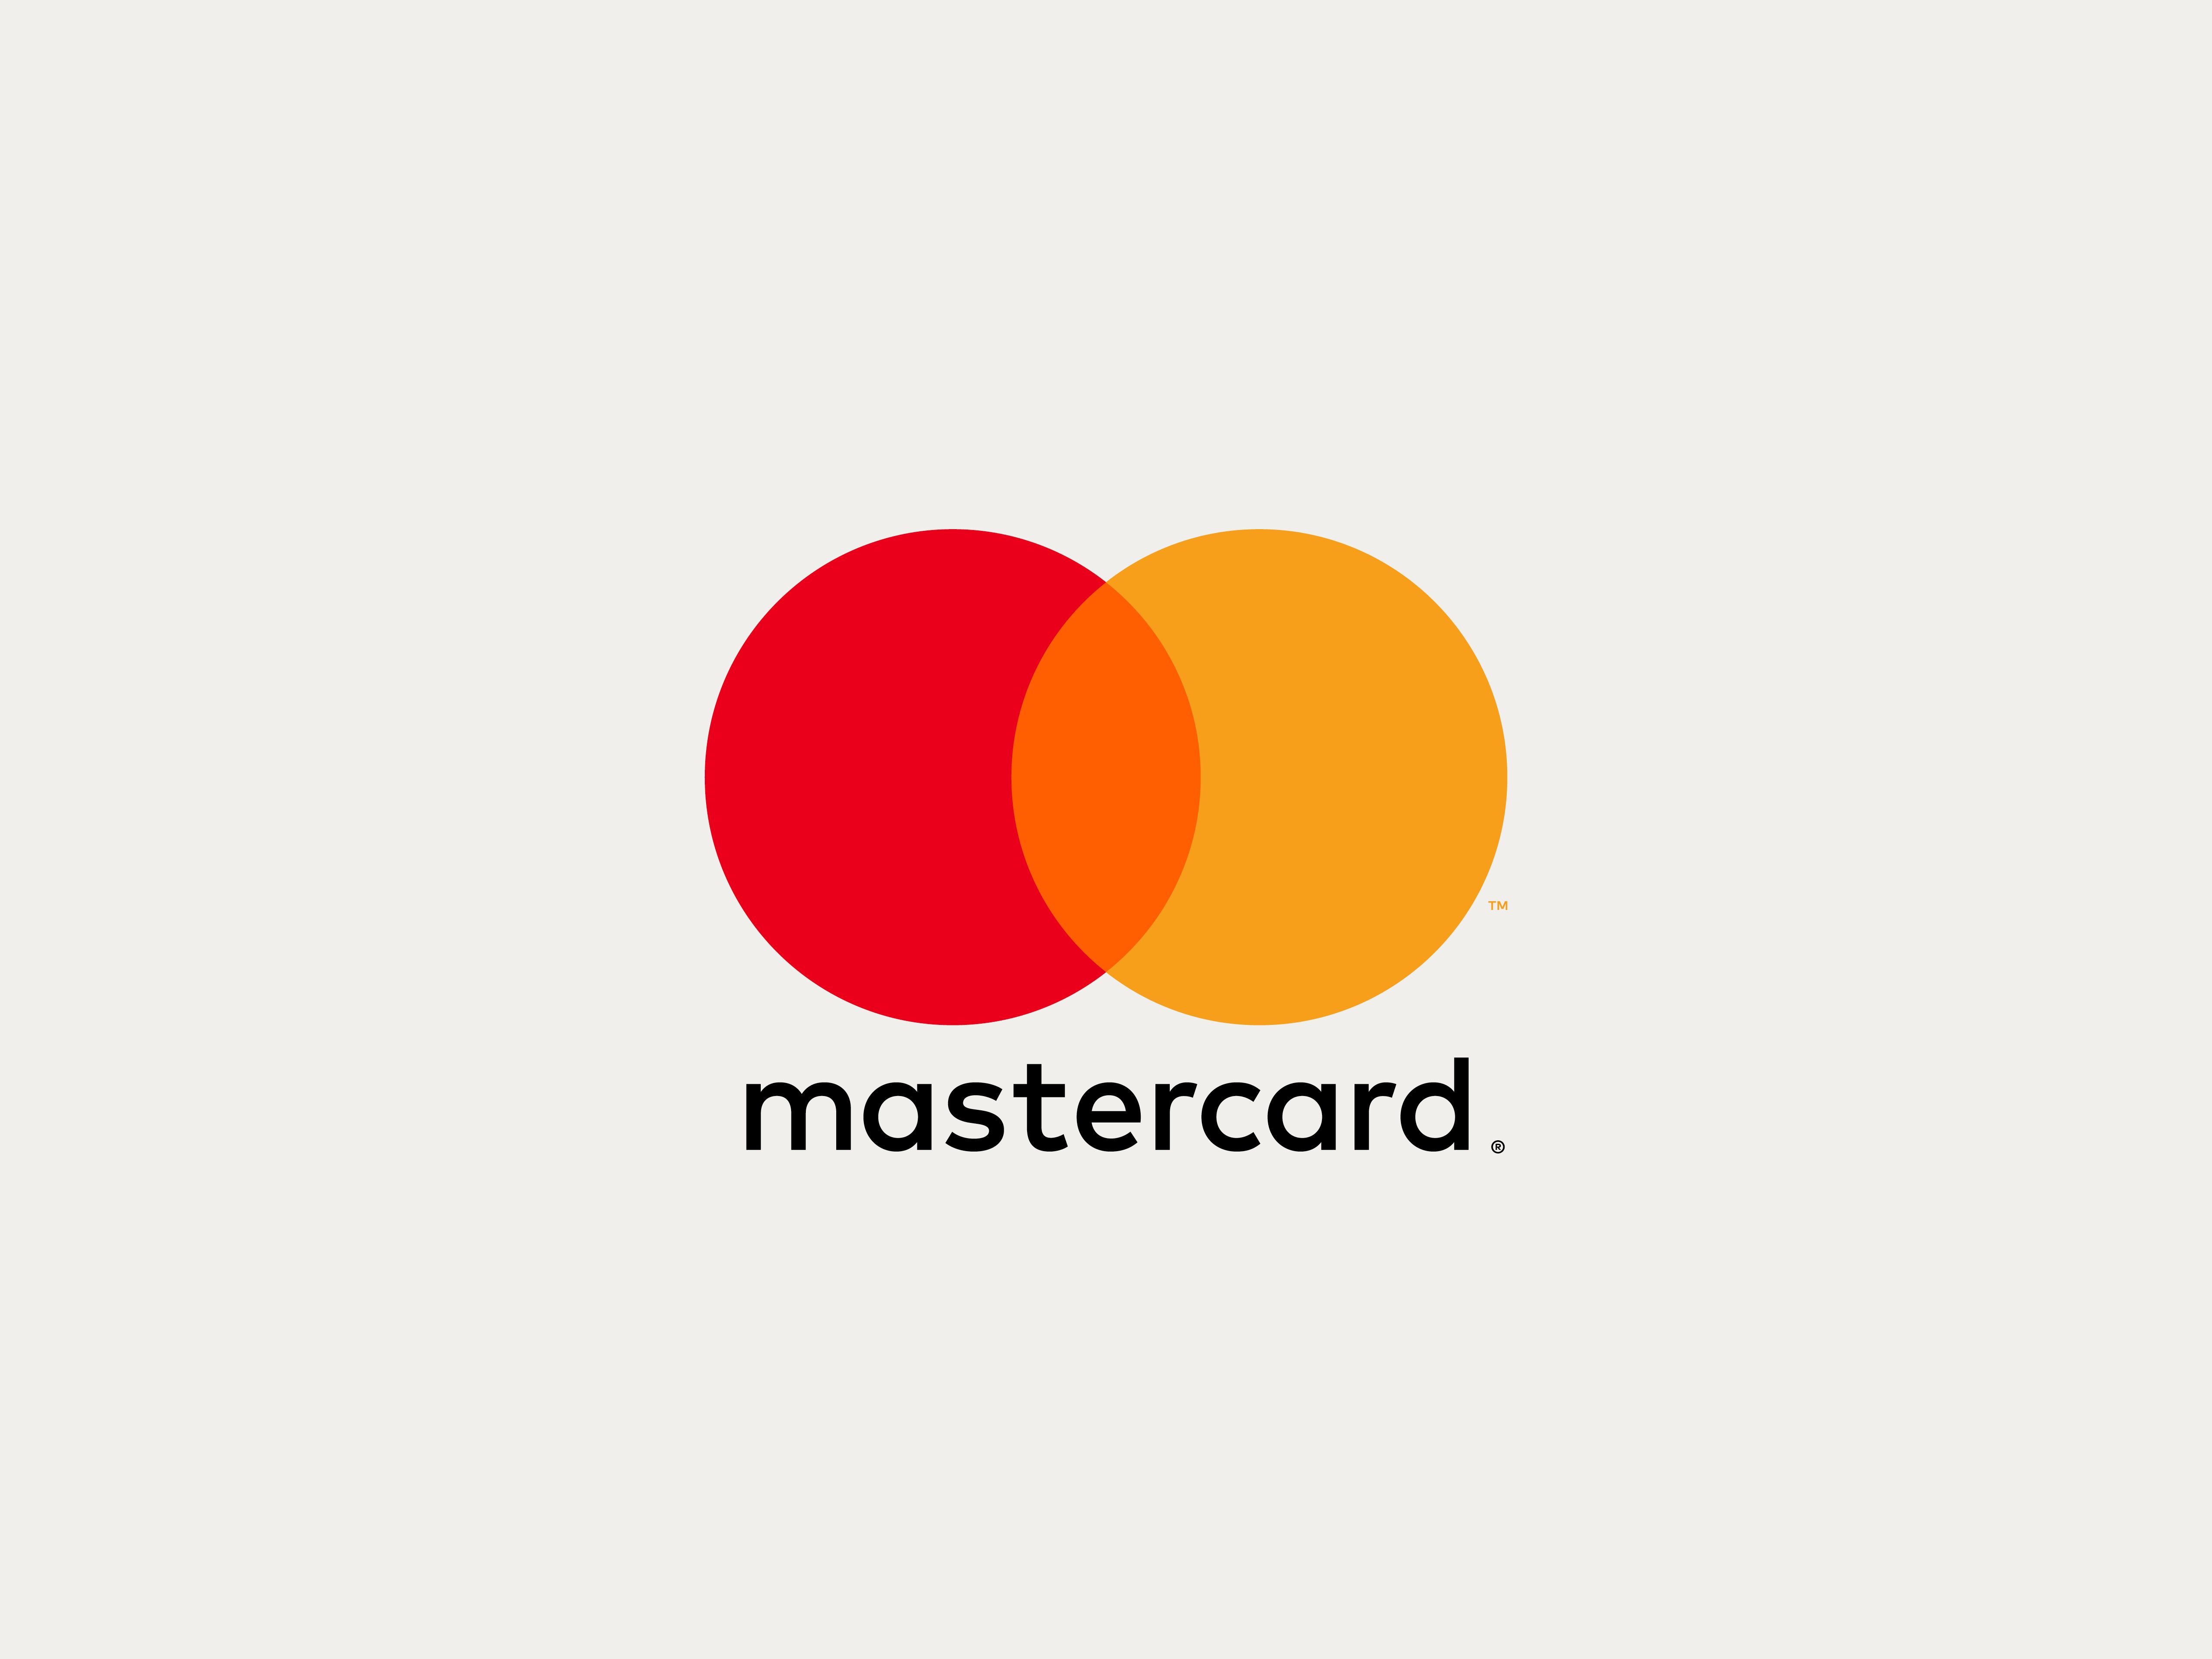 MasterCard Logo - Mastercard reveals new logo for the first time in 20 years – Design Week